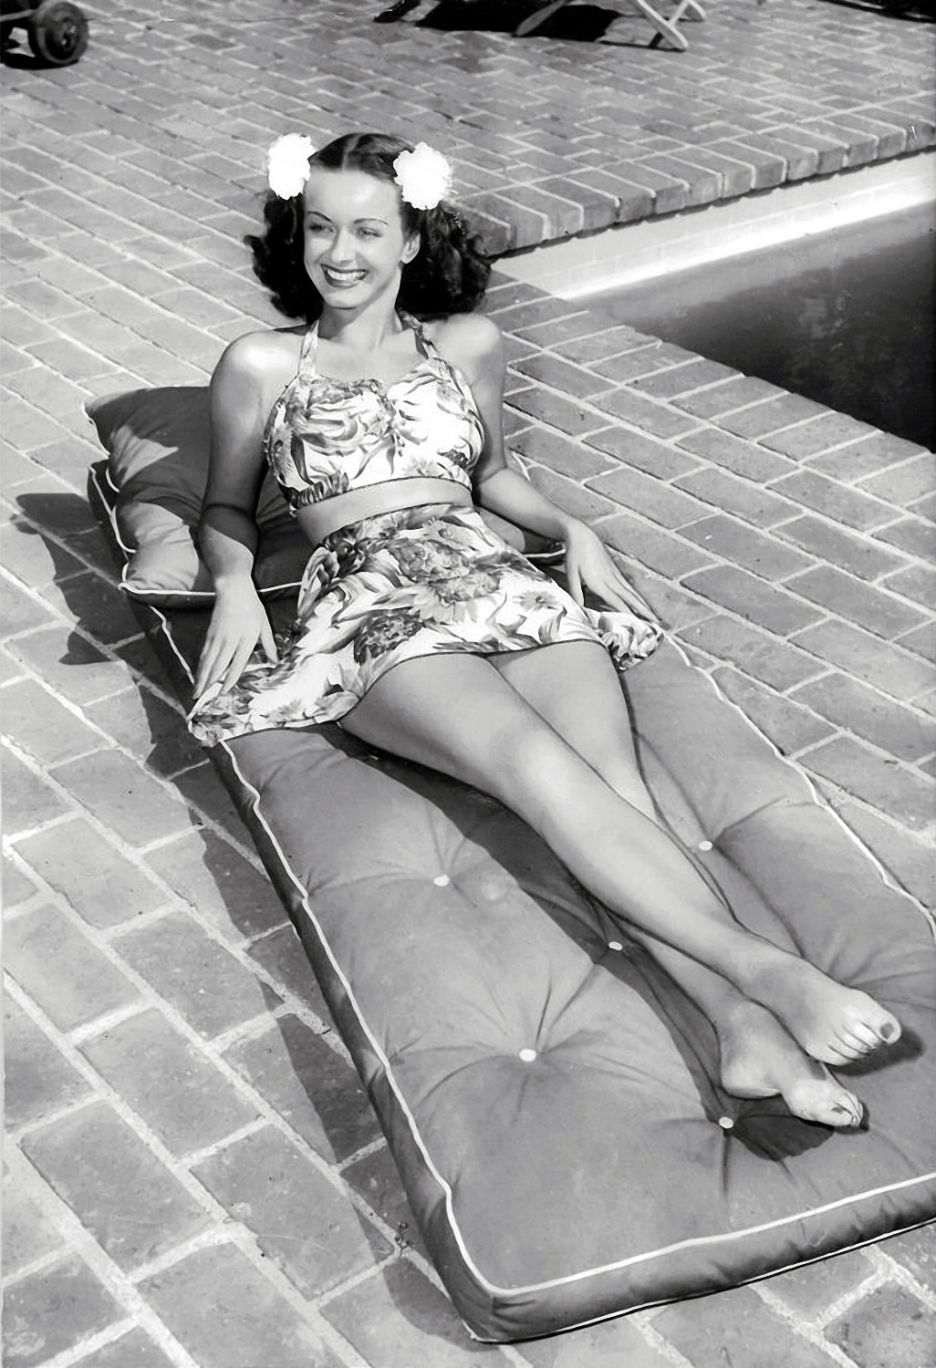 Noel neill better known as lois lane her pin up picture was noel neill better known as lois lane her pin up picture was second in popularity only to betty grables among gis during world war ii thecheapjerseys Gallery